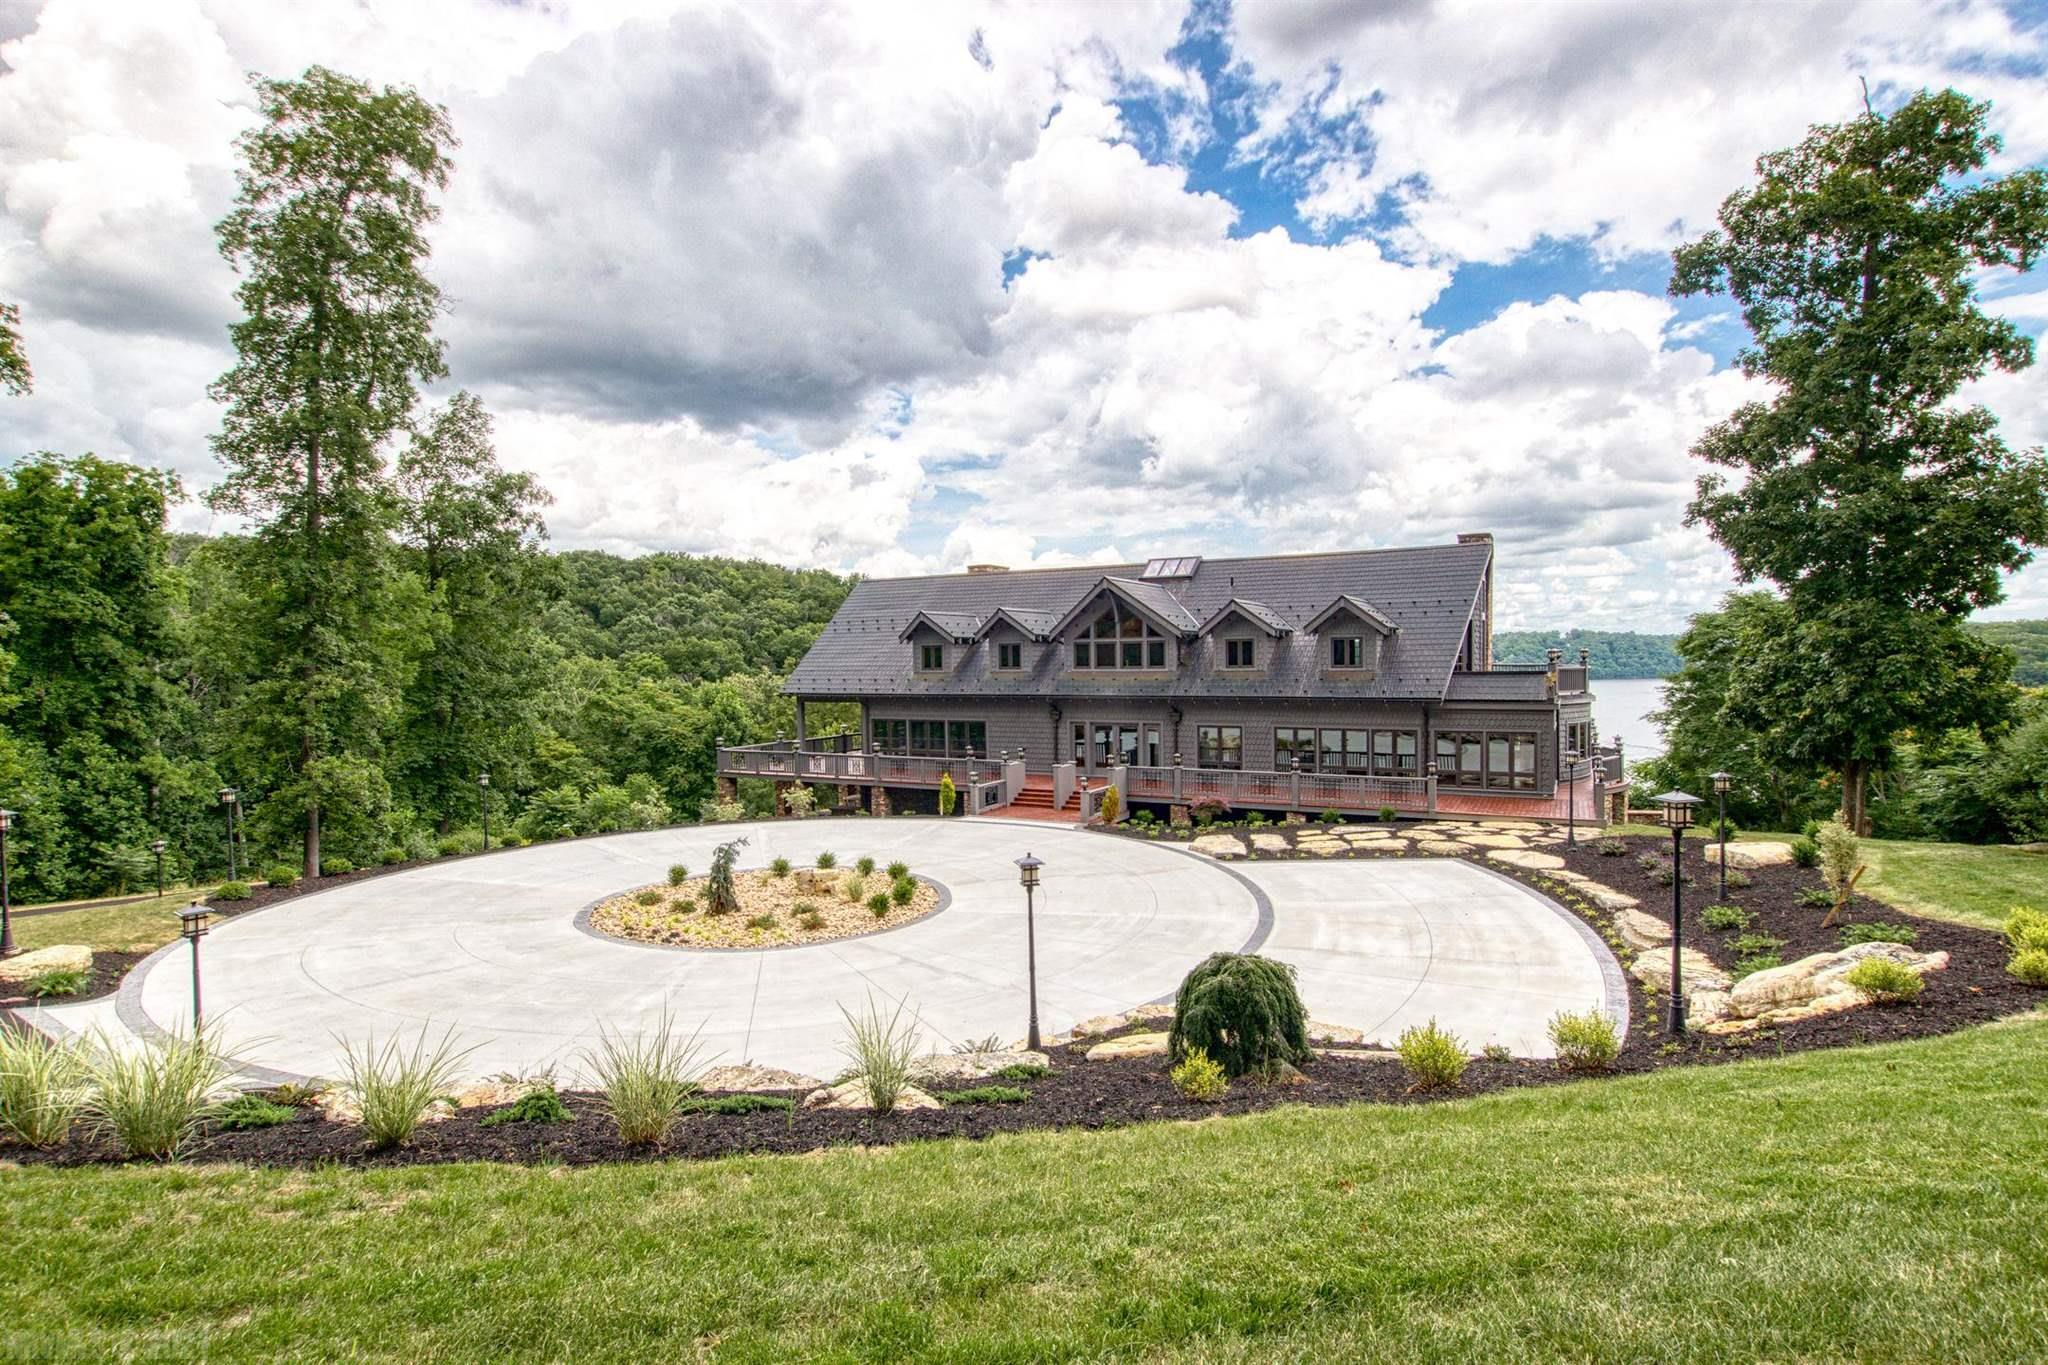 Welcome to Wish Manor! This custom built Home sitting on 23 acres with gorgeous lakefront and access. Exterior and interior of Home are cypress wood, custom built doors,  rock and stamped copper roof. Interior feature  include open floor plan,  4-5 bedrooms, 3 full and 2-1/2  baths, double kitchen with a gas Thermador 6 burner range and a  electric Jenn Air range, Viking refrigerator/freezer, 1 full size and 2 drawer dishwashers and an elevator. Master bedroom on main level with walk in tile shower, Master Suite on upper level with private laundry and walk in shower and separate tub. Entertain your friends and family in the Great room with gorgeous rock fireplace, full bar area, media area and private deck. The 5,350 sq ft of pressure treated decking offers room to entertain with lake views. This property boasts a boat dock with party deck, 2 boat lift and  2 jet ski lifts. Additional detached 1 car garage with 1/2 bath as you approach the house. Multiple heat pumps and water heaters.